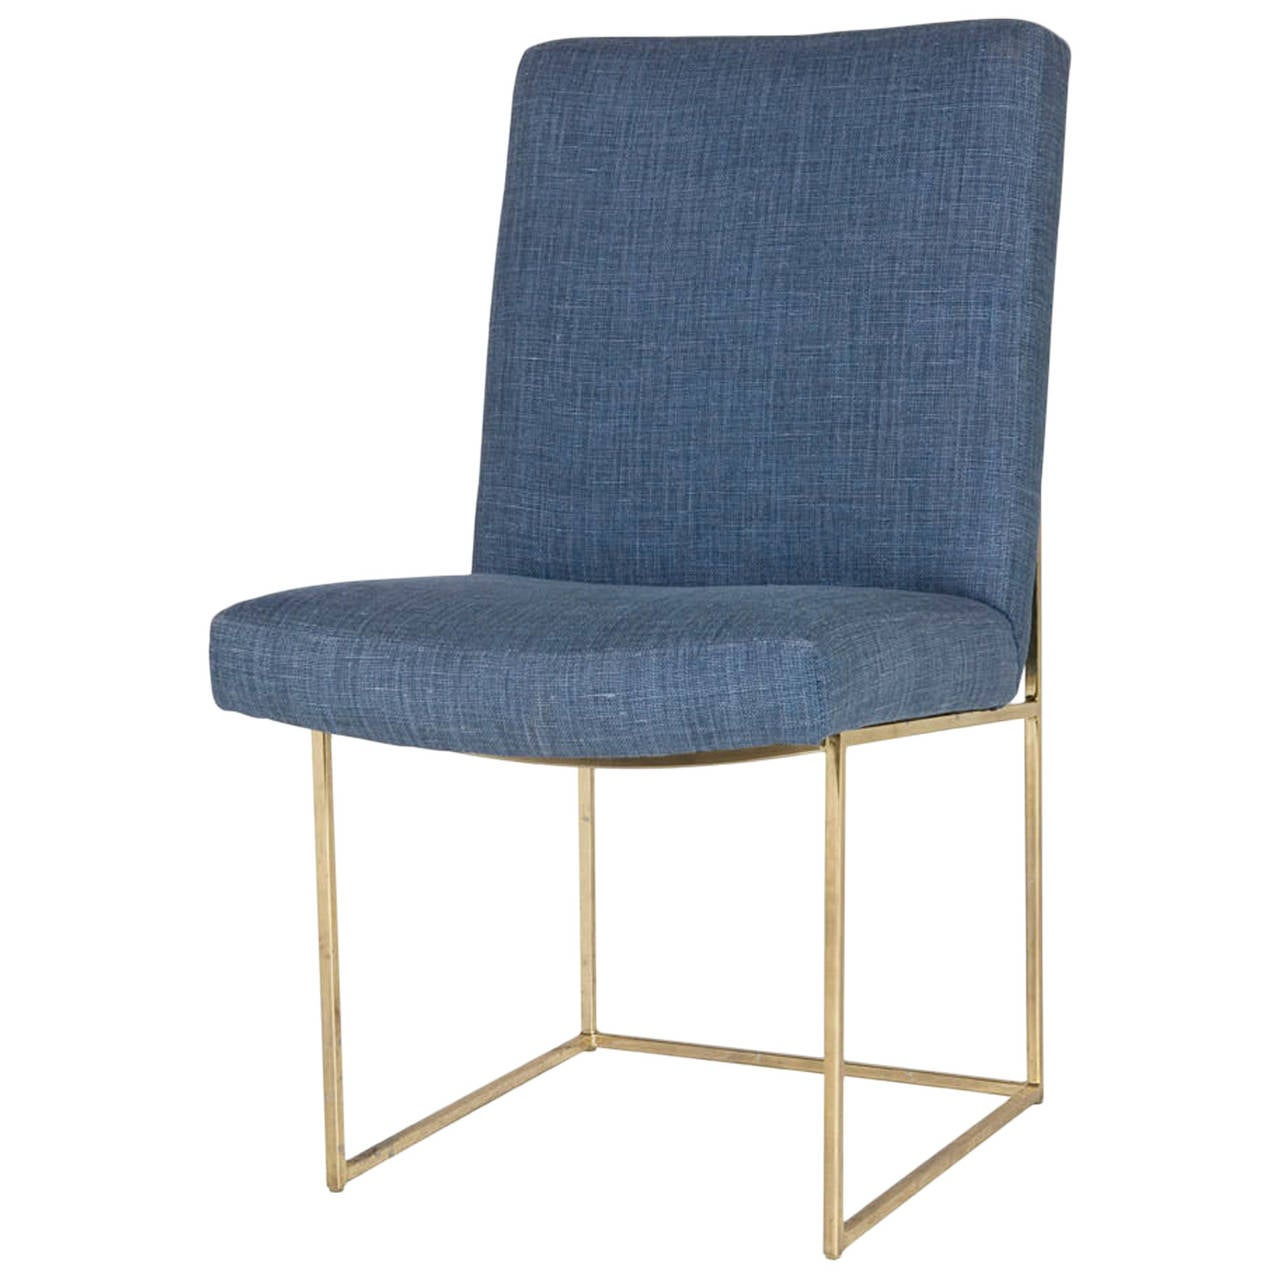 Vintage milo baughman brass dining chair at 1stdibs - Seating room chairs images ...